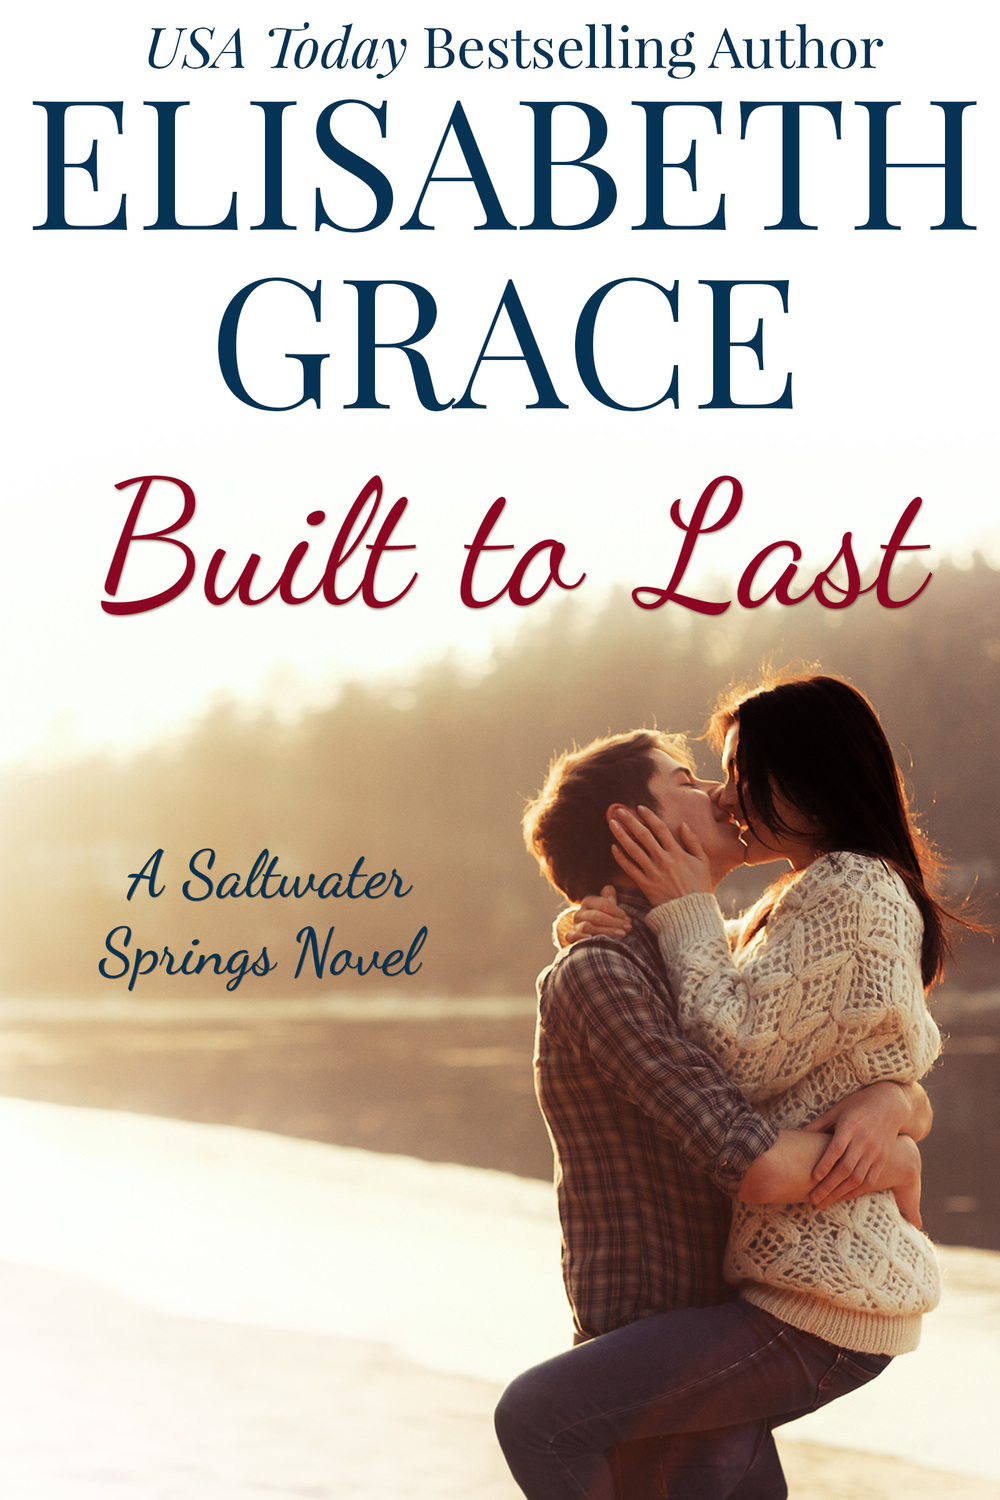 Built to Last by Elizabeth Grace